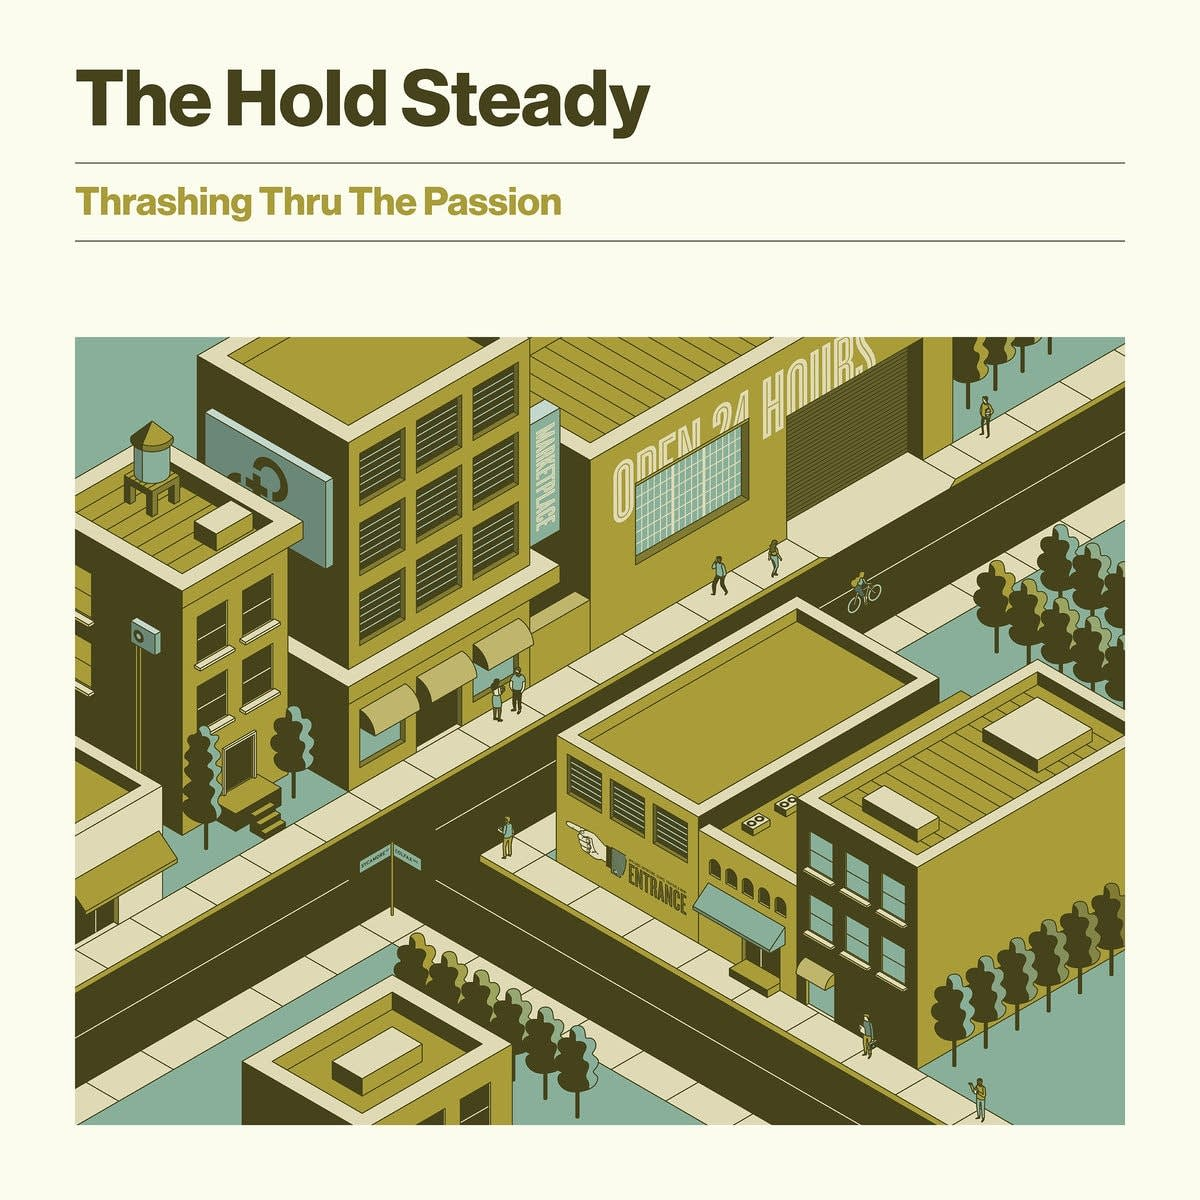 The Hold Steady, 'Thrashing Thru The Passion'